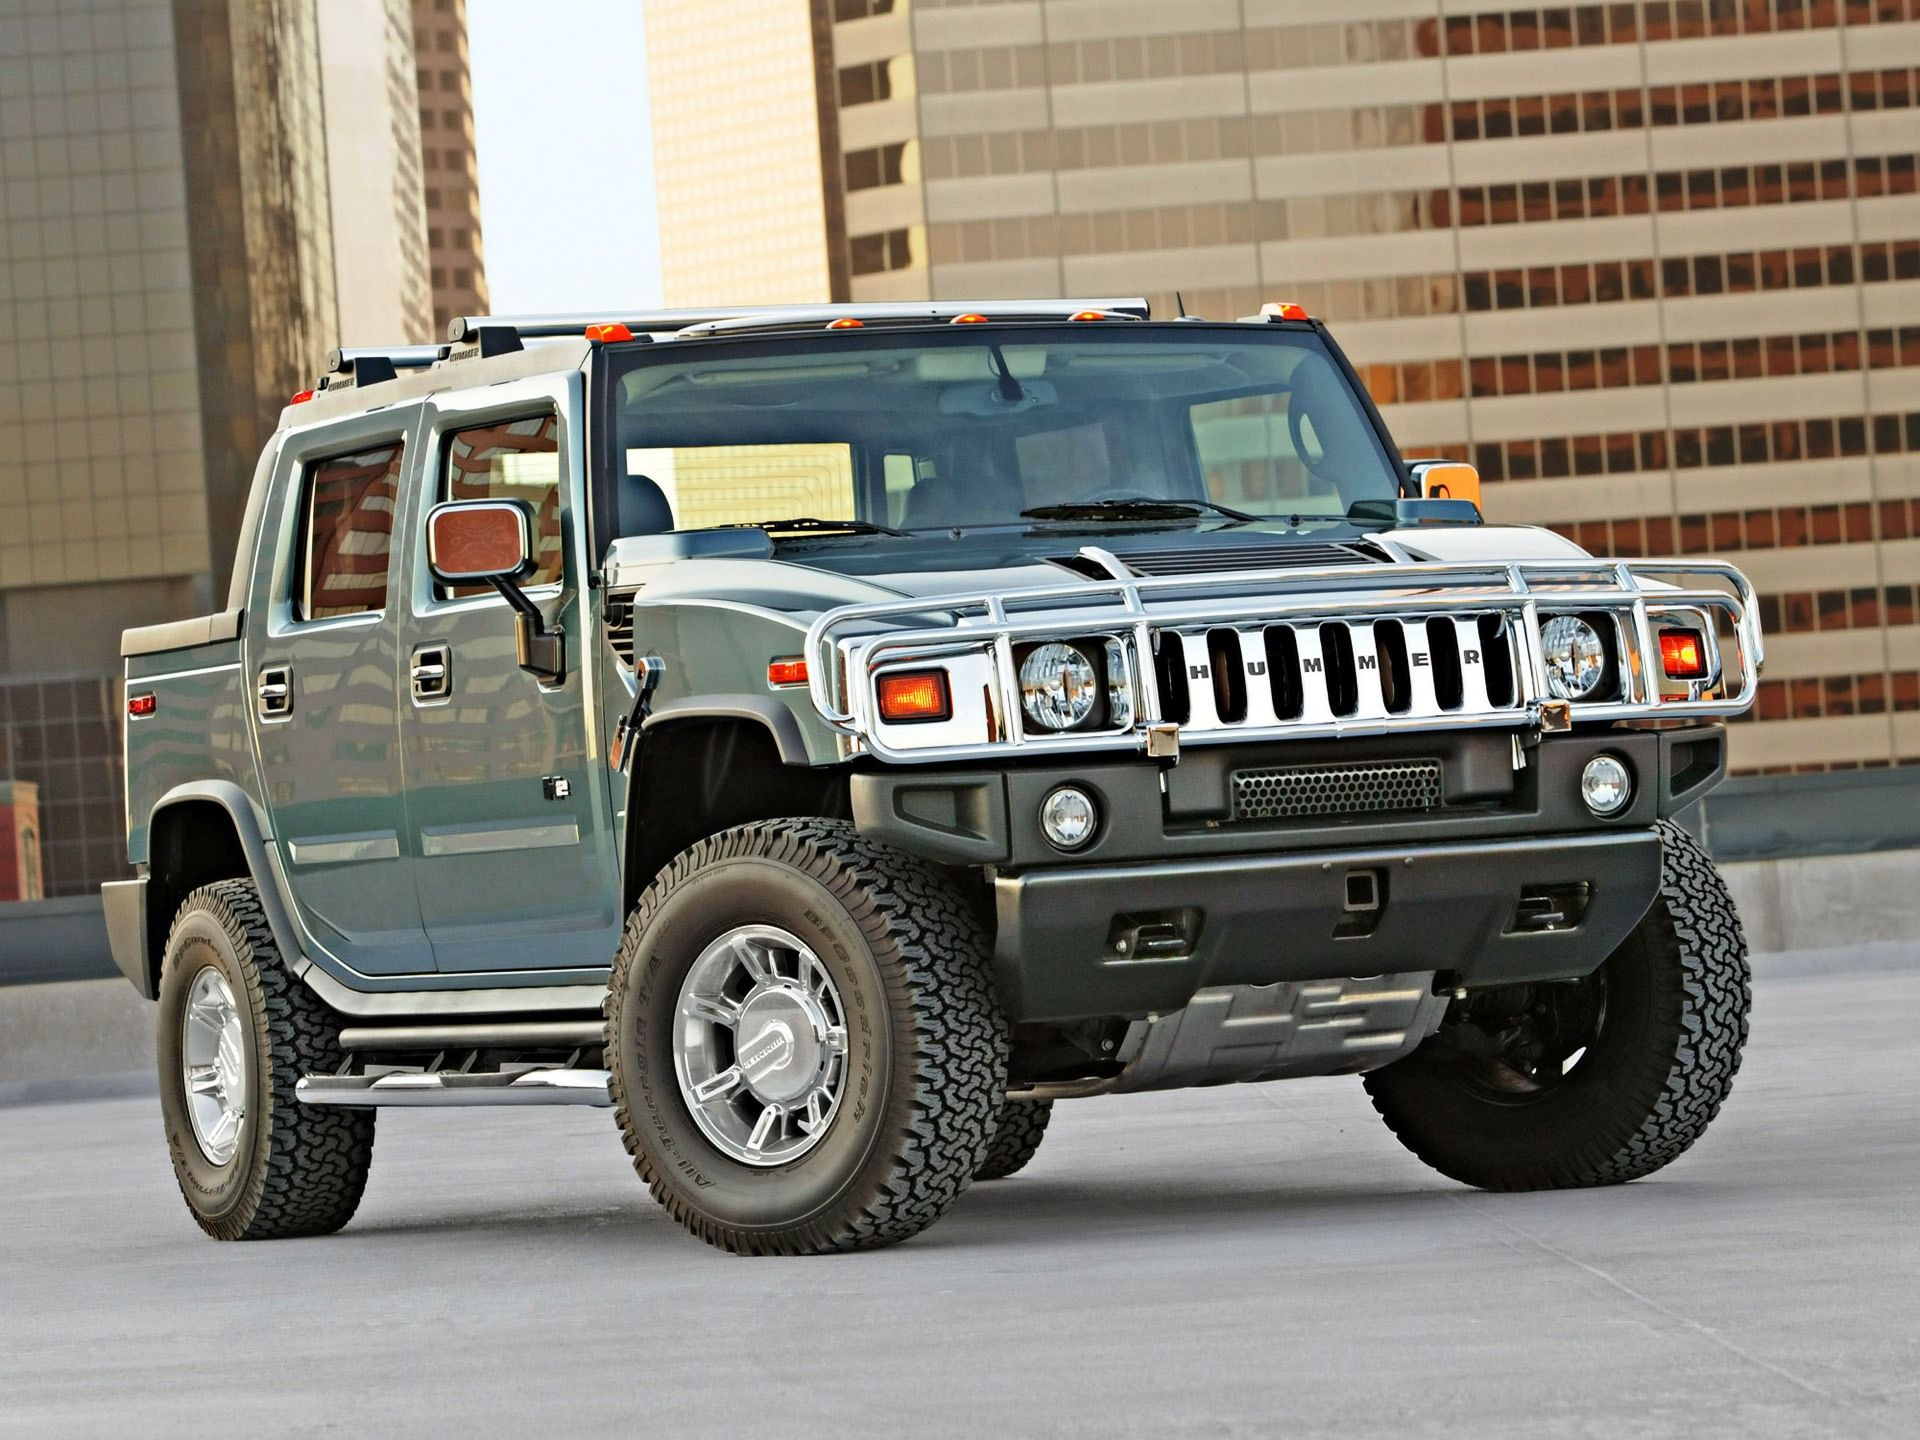 22 best Hummer and Jeep images on Pinterest